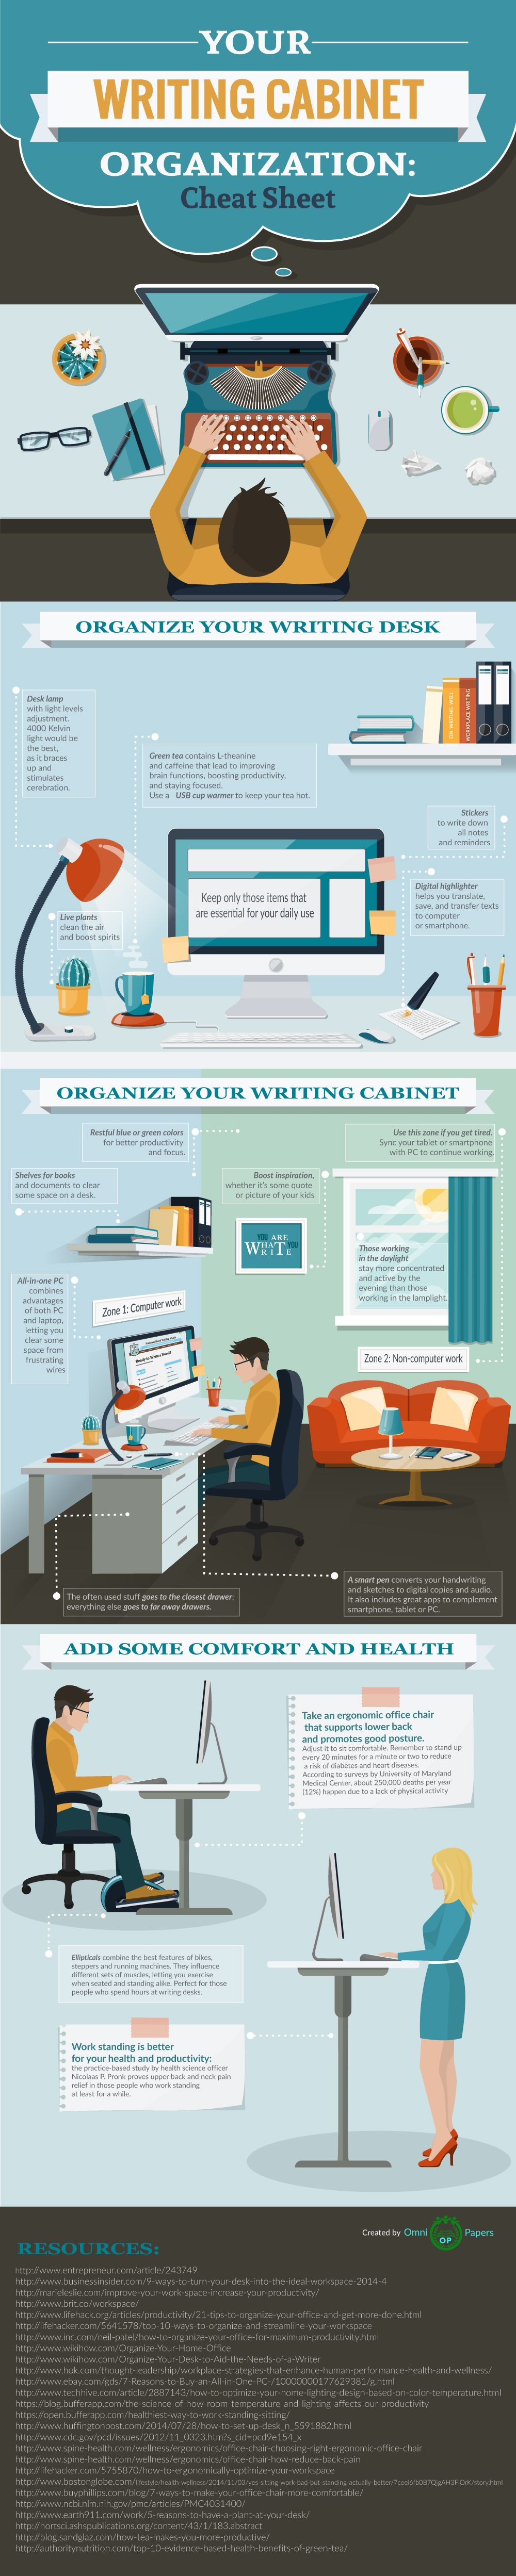 Cheat Sheet: How to Organize your Home Writing Cabinet #infographic